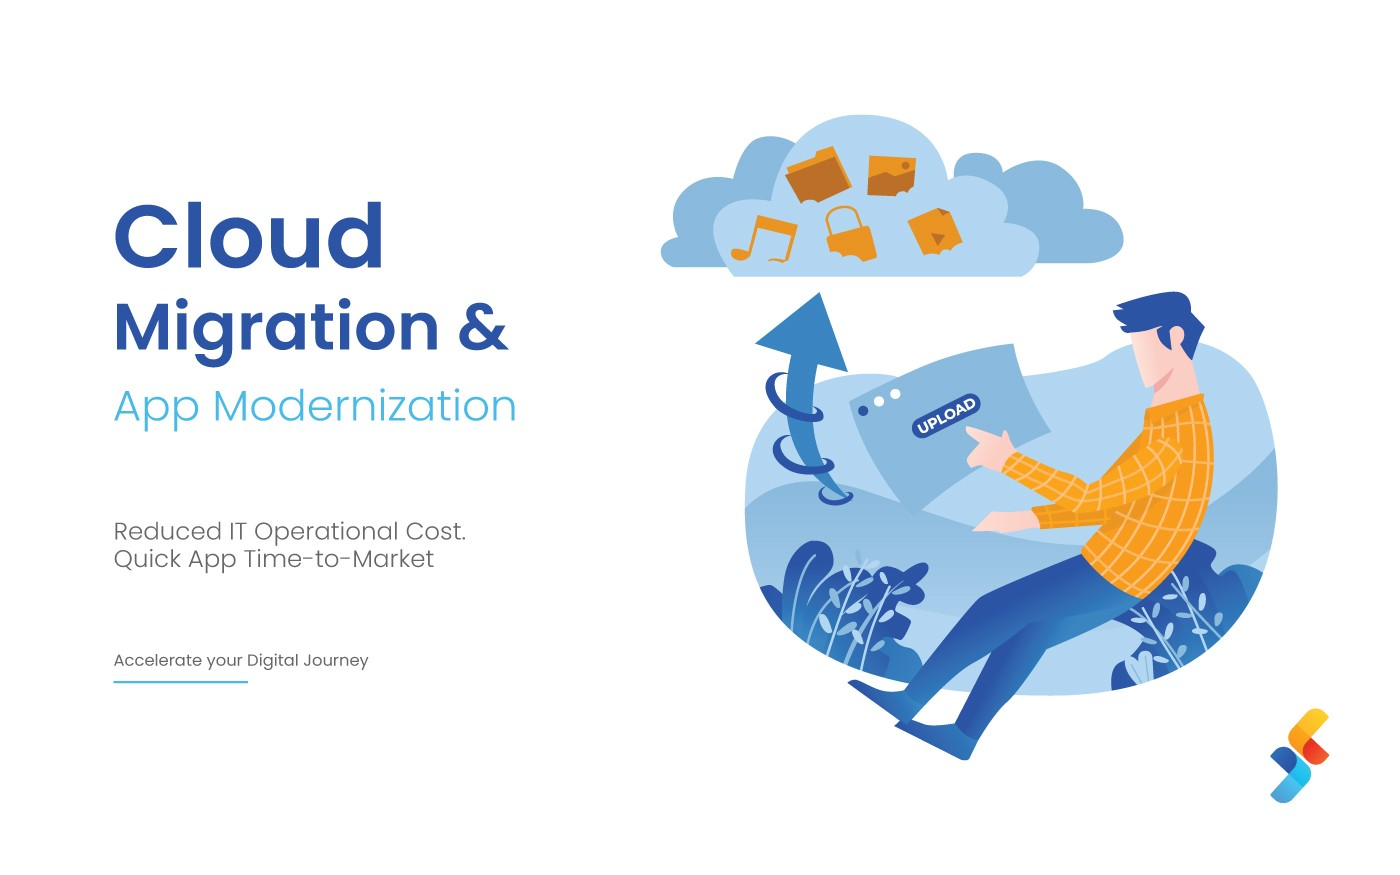 Cloud Migration and App Modernization